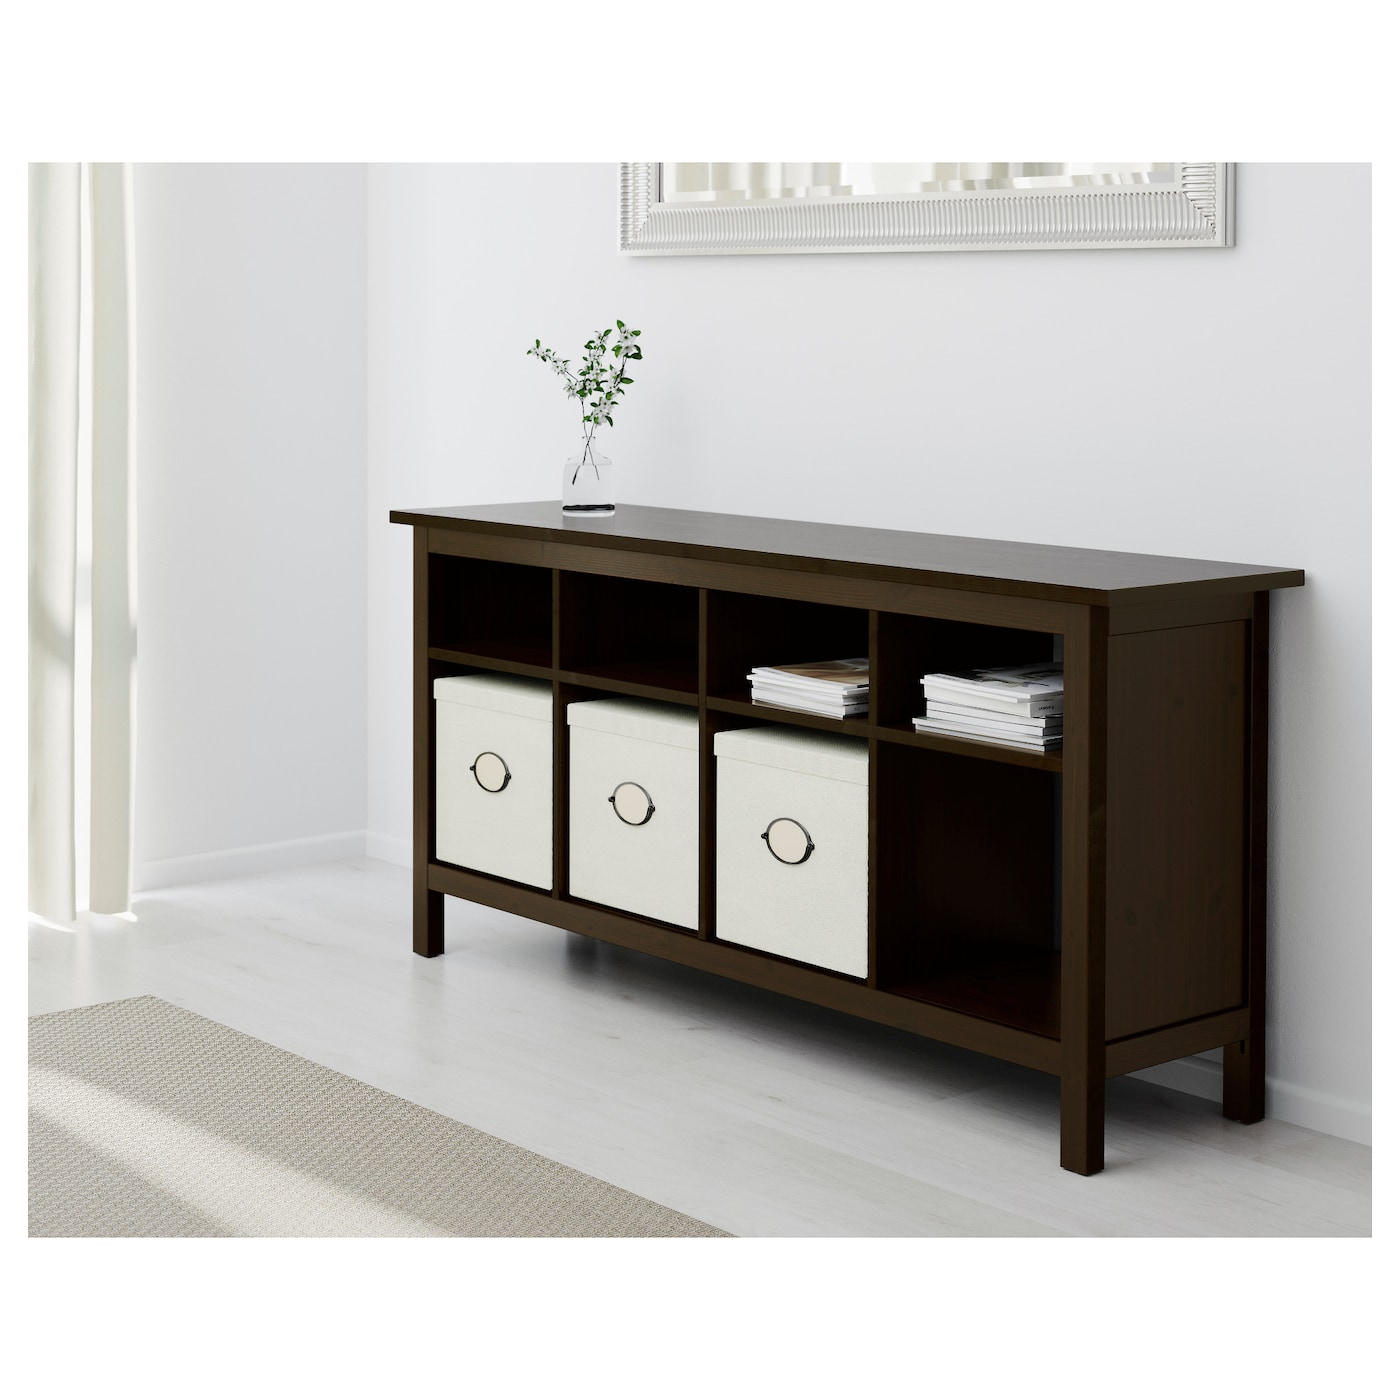 Hemnes Coffee Table Light Brown 118x75 Cm: HEMNES Console Table Black-brown 157 X 40 Cm